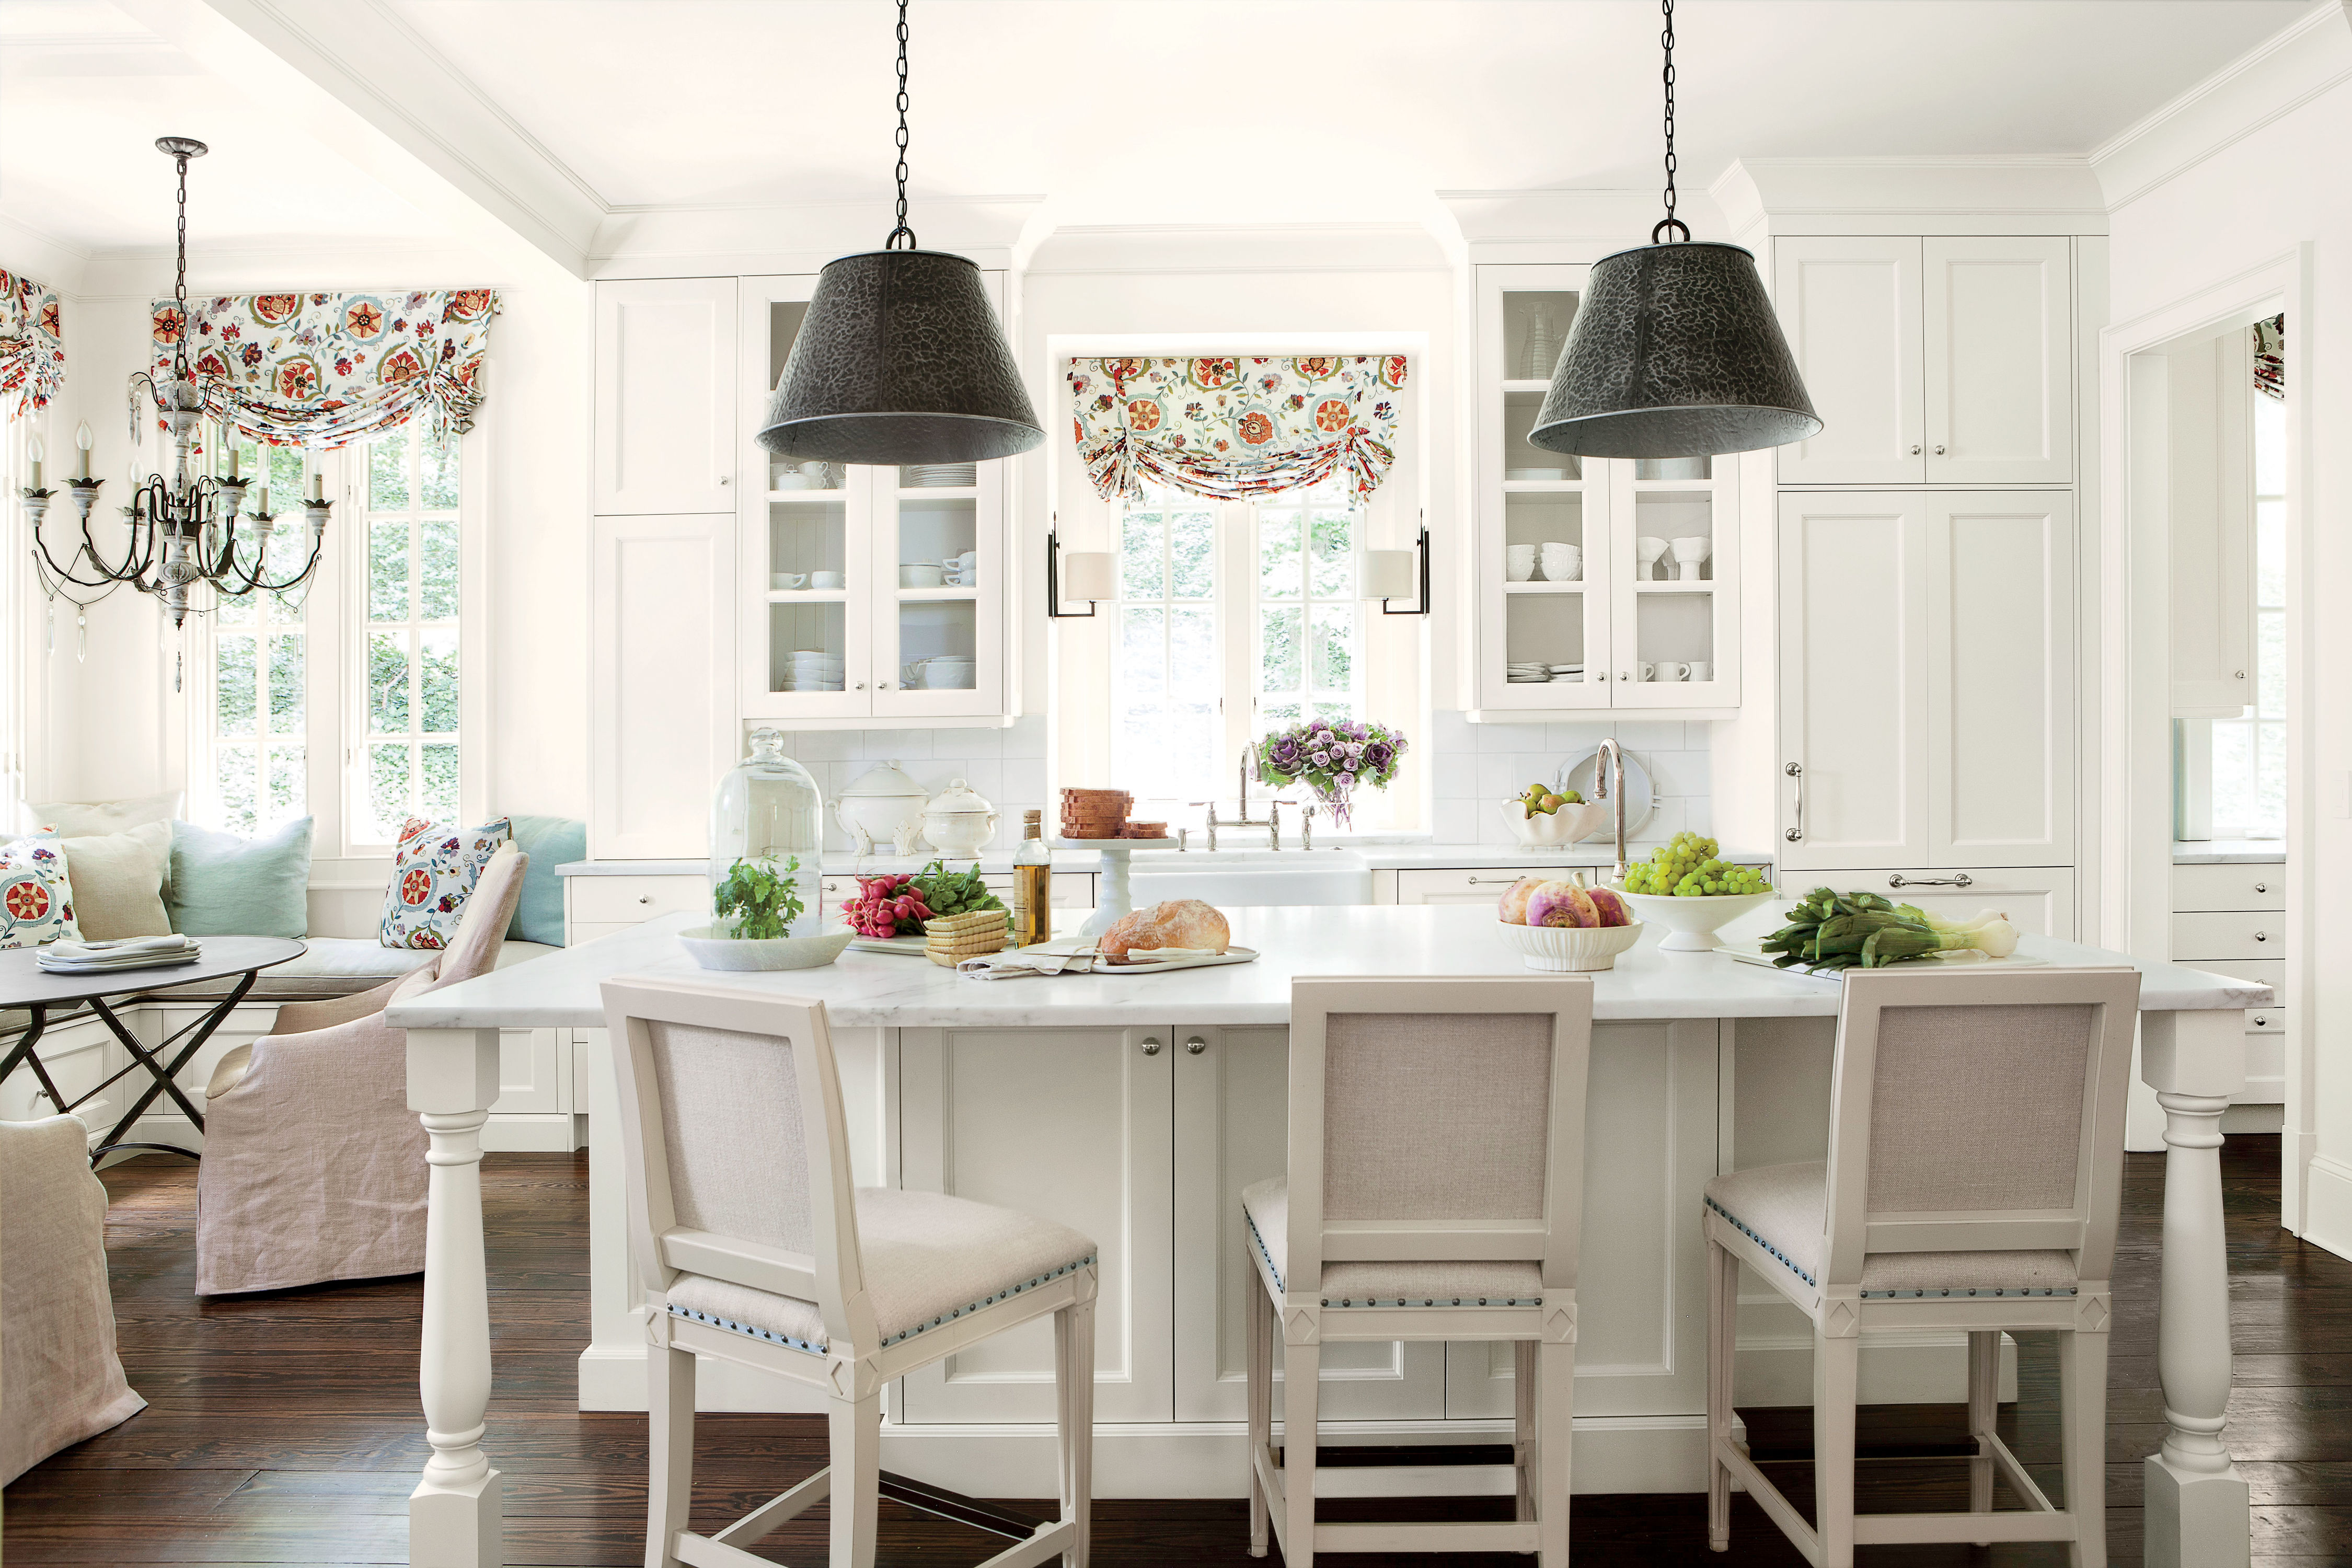 The Best White Paint for Your Kitchen